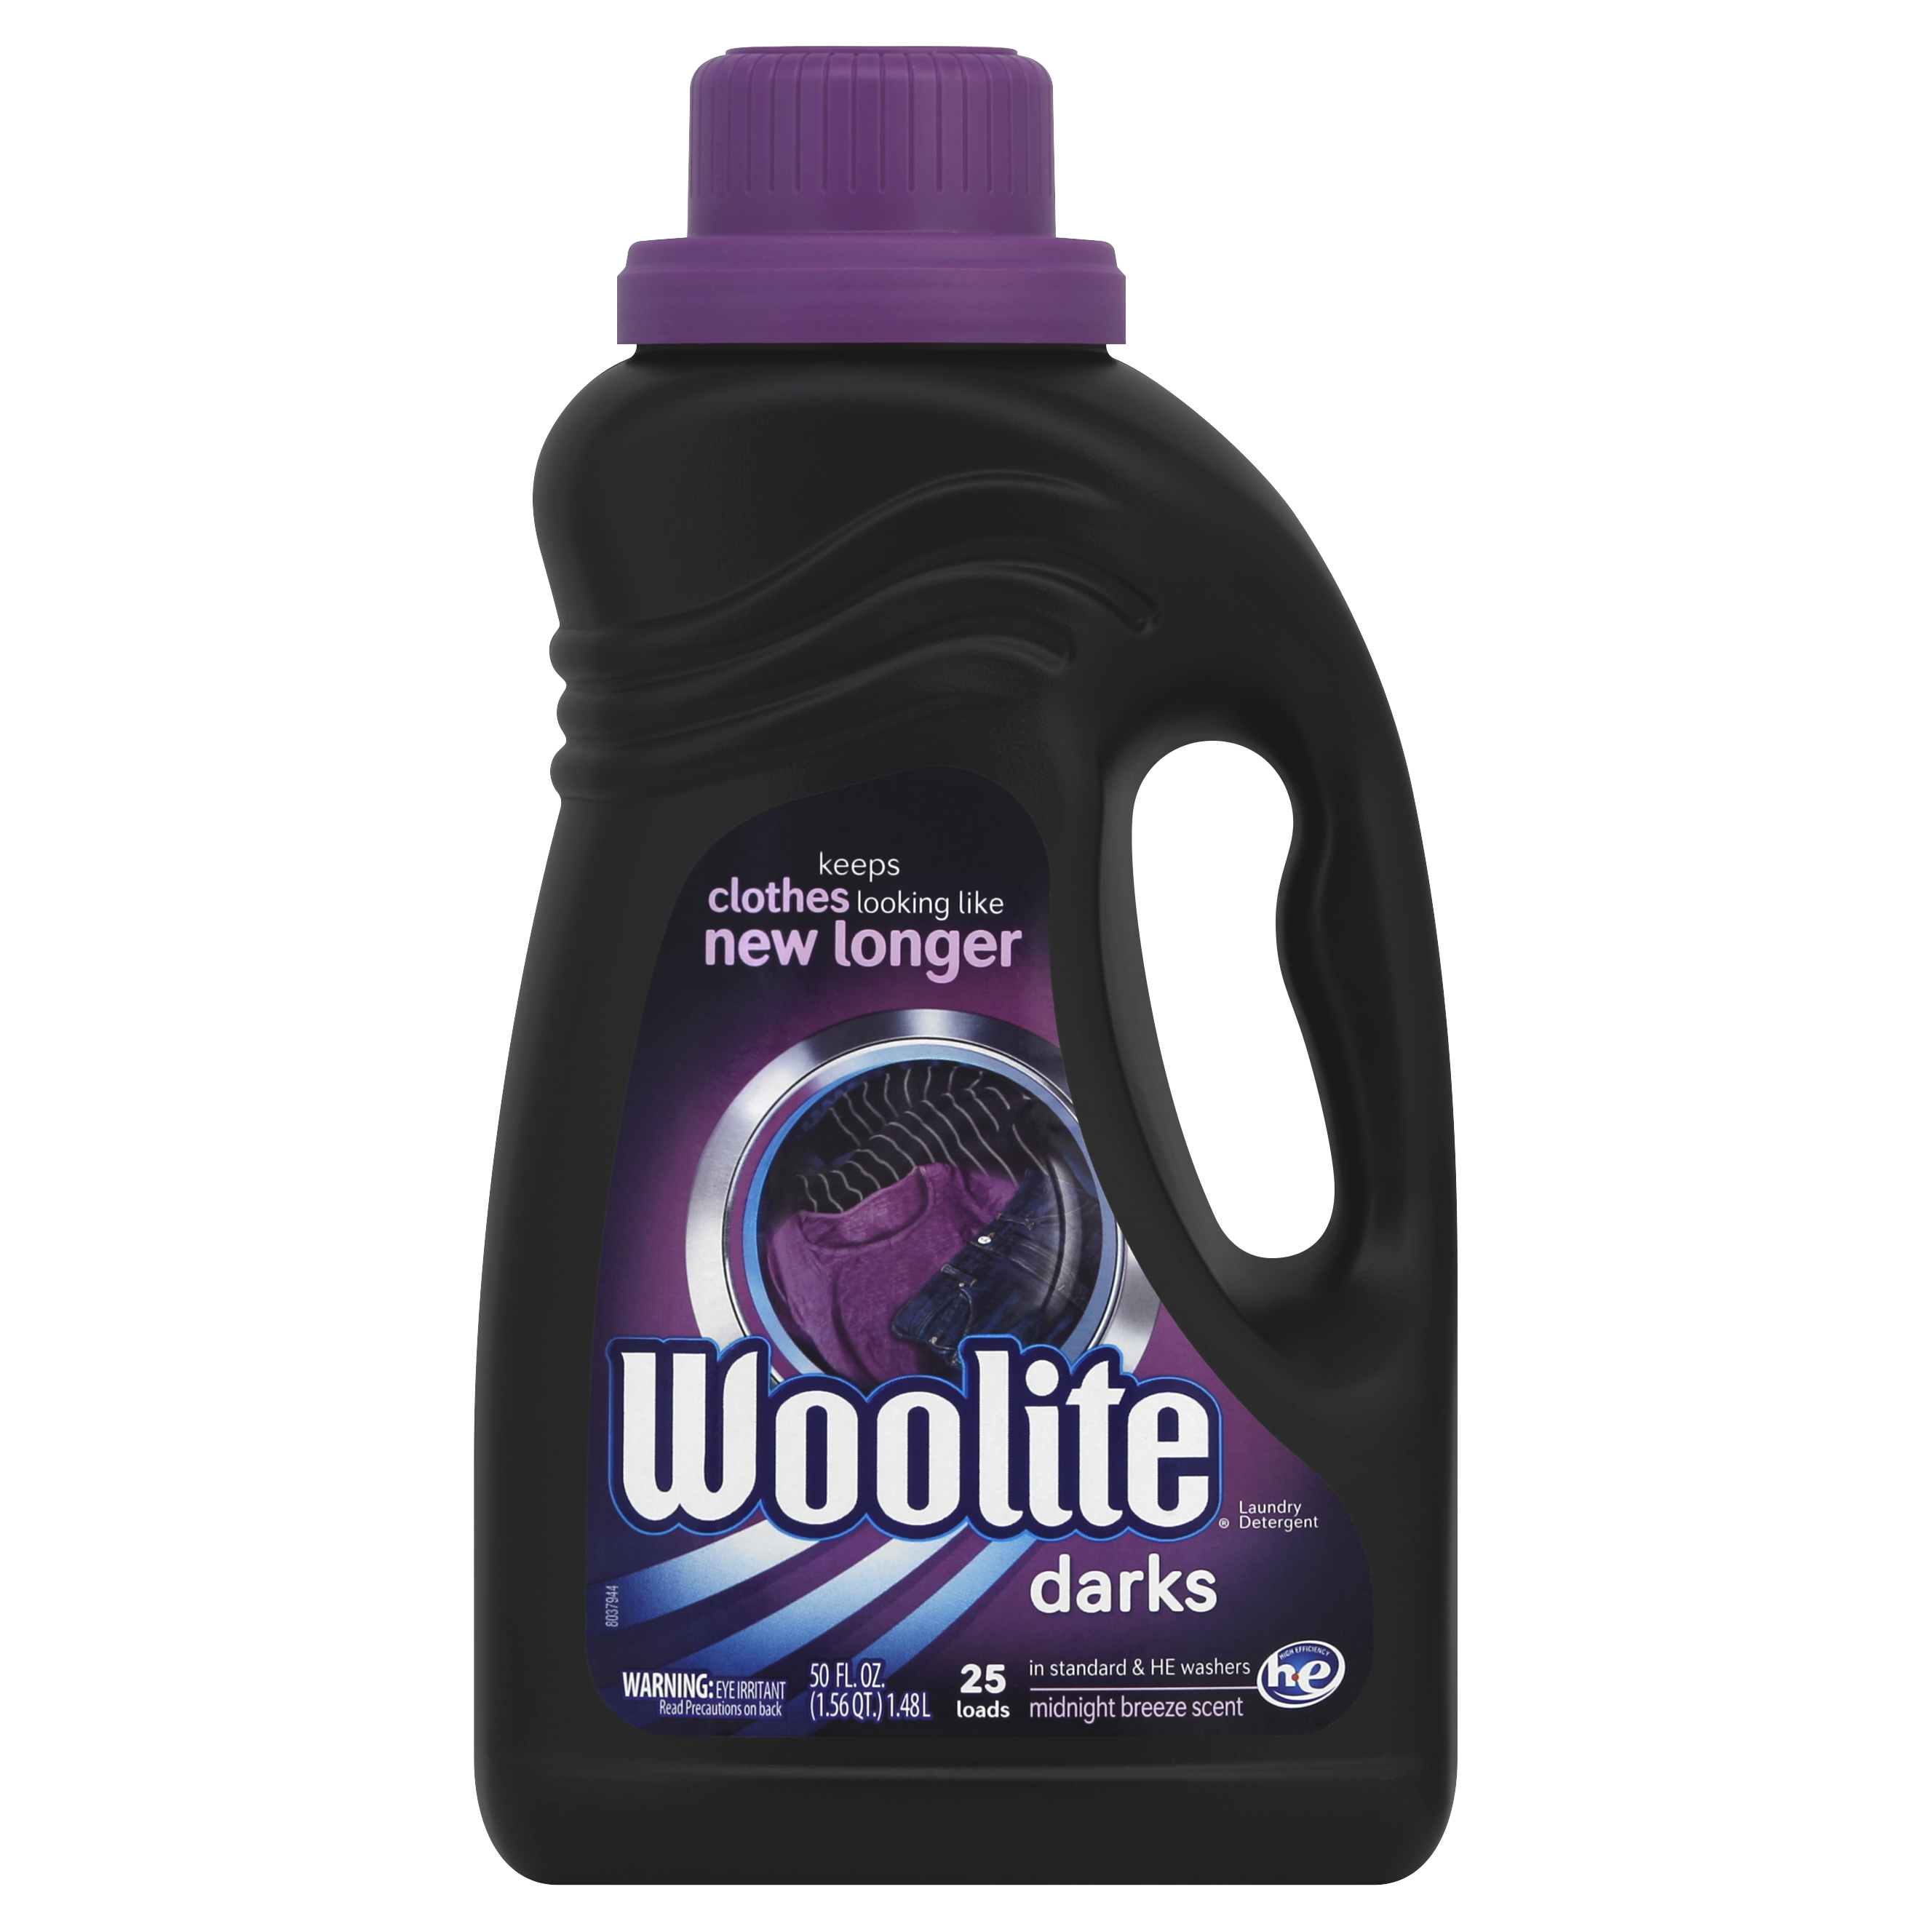 Woolite Dark Care Laundry Detergent, 50 Ounce